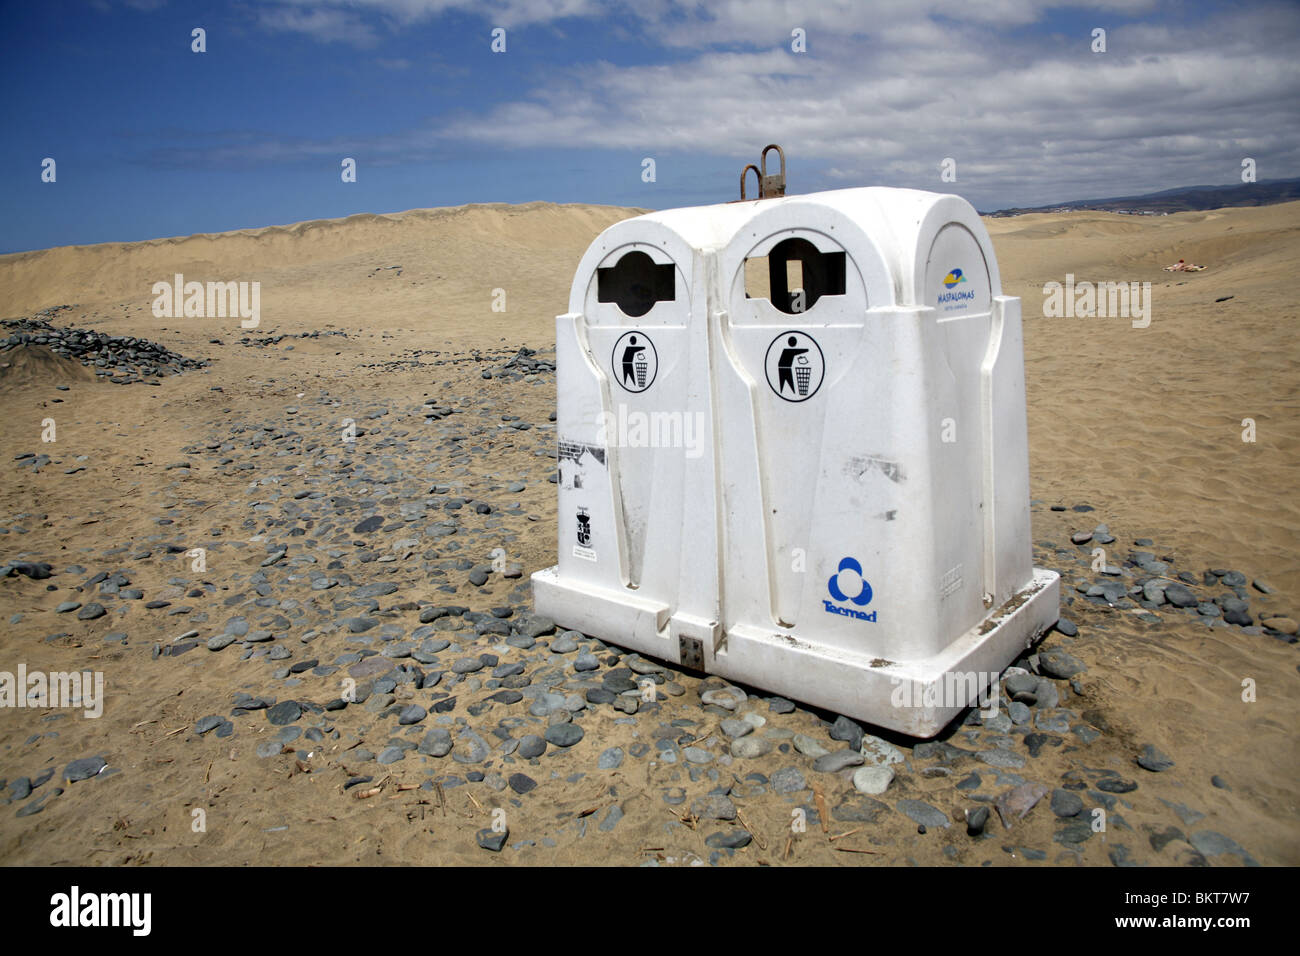 Rubbish bins in the wilderness - Stock Image